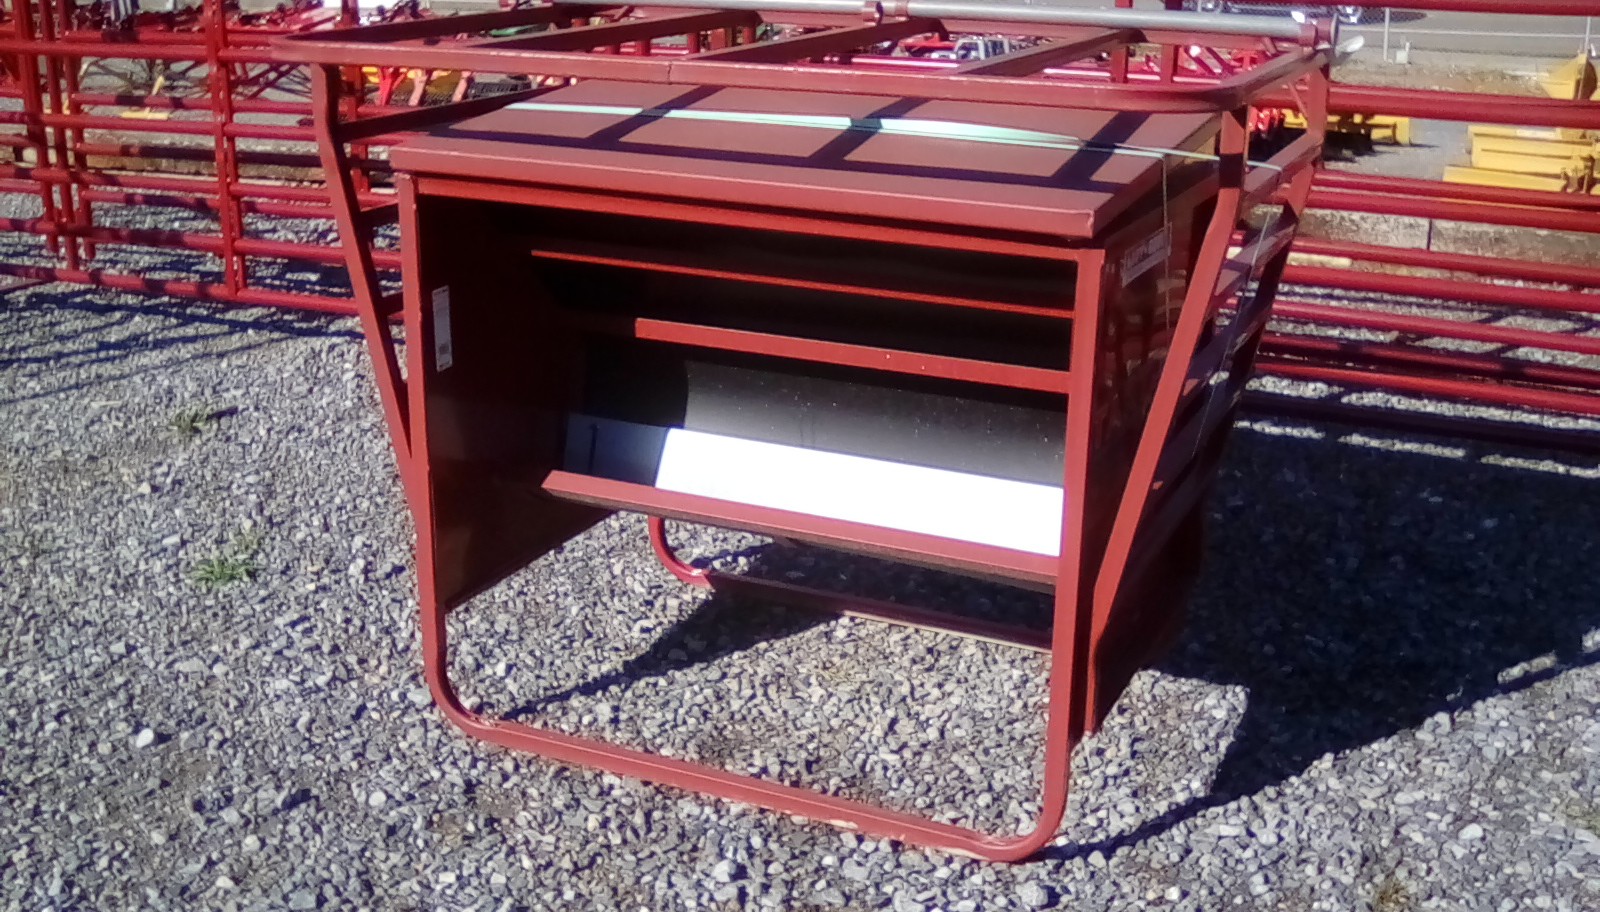 TARTER 650 POUND CALF CREEP FEEDER Image